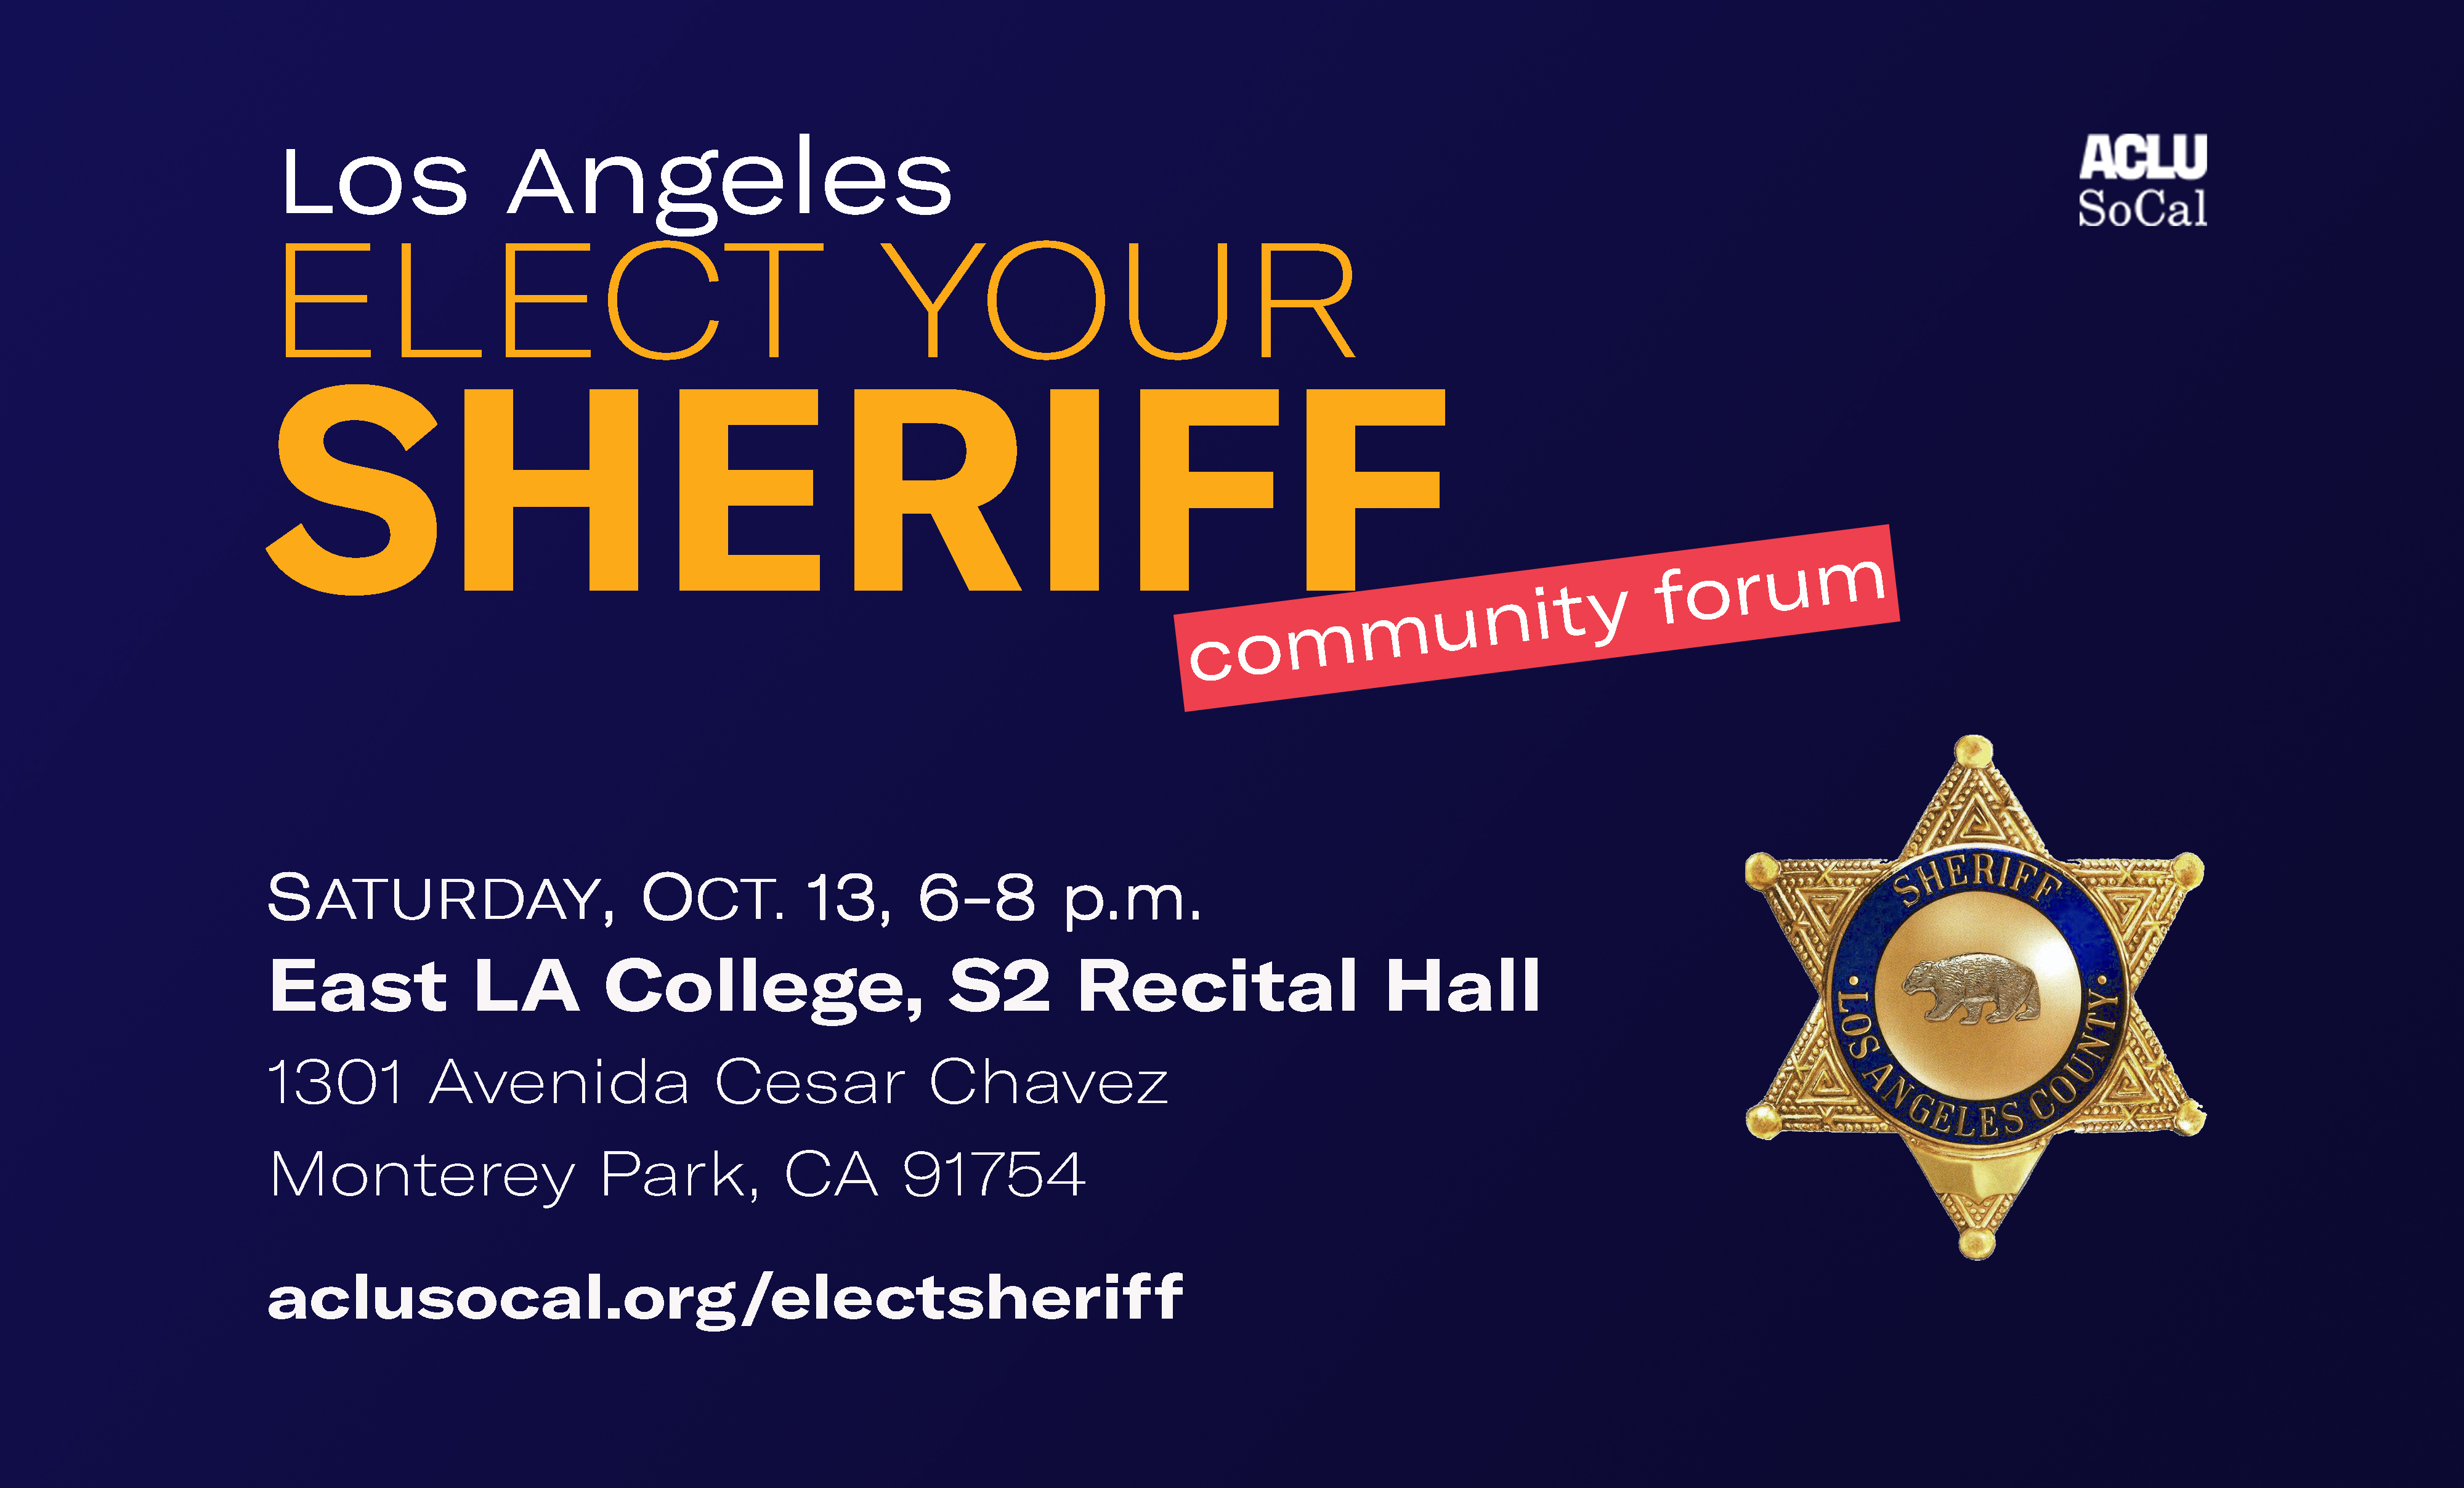 Los Angeles Elect Your Sheriff Community Forum